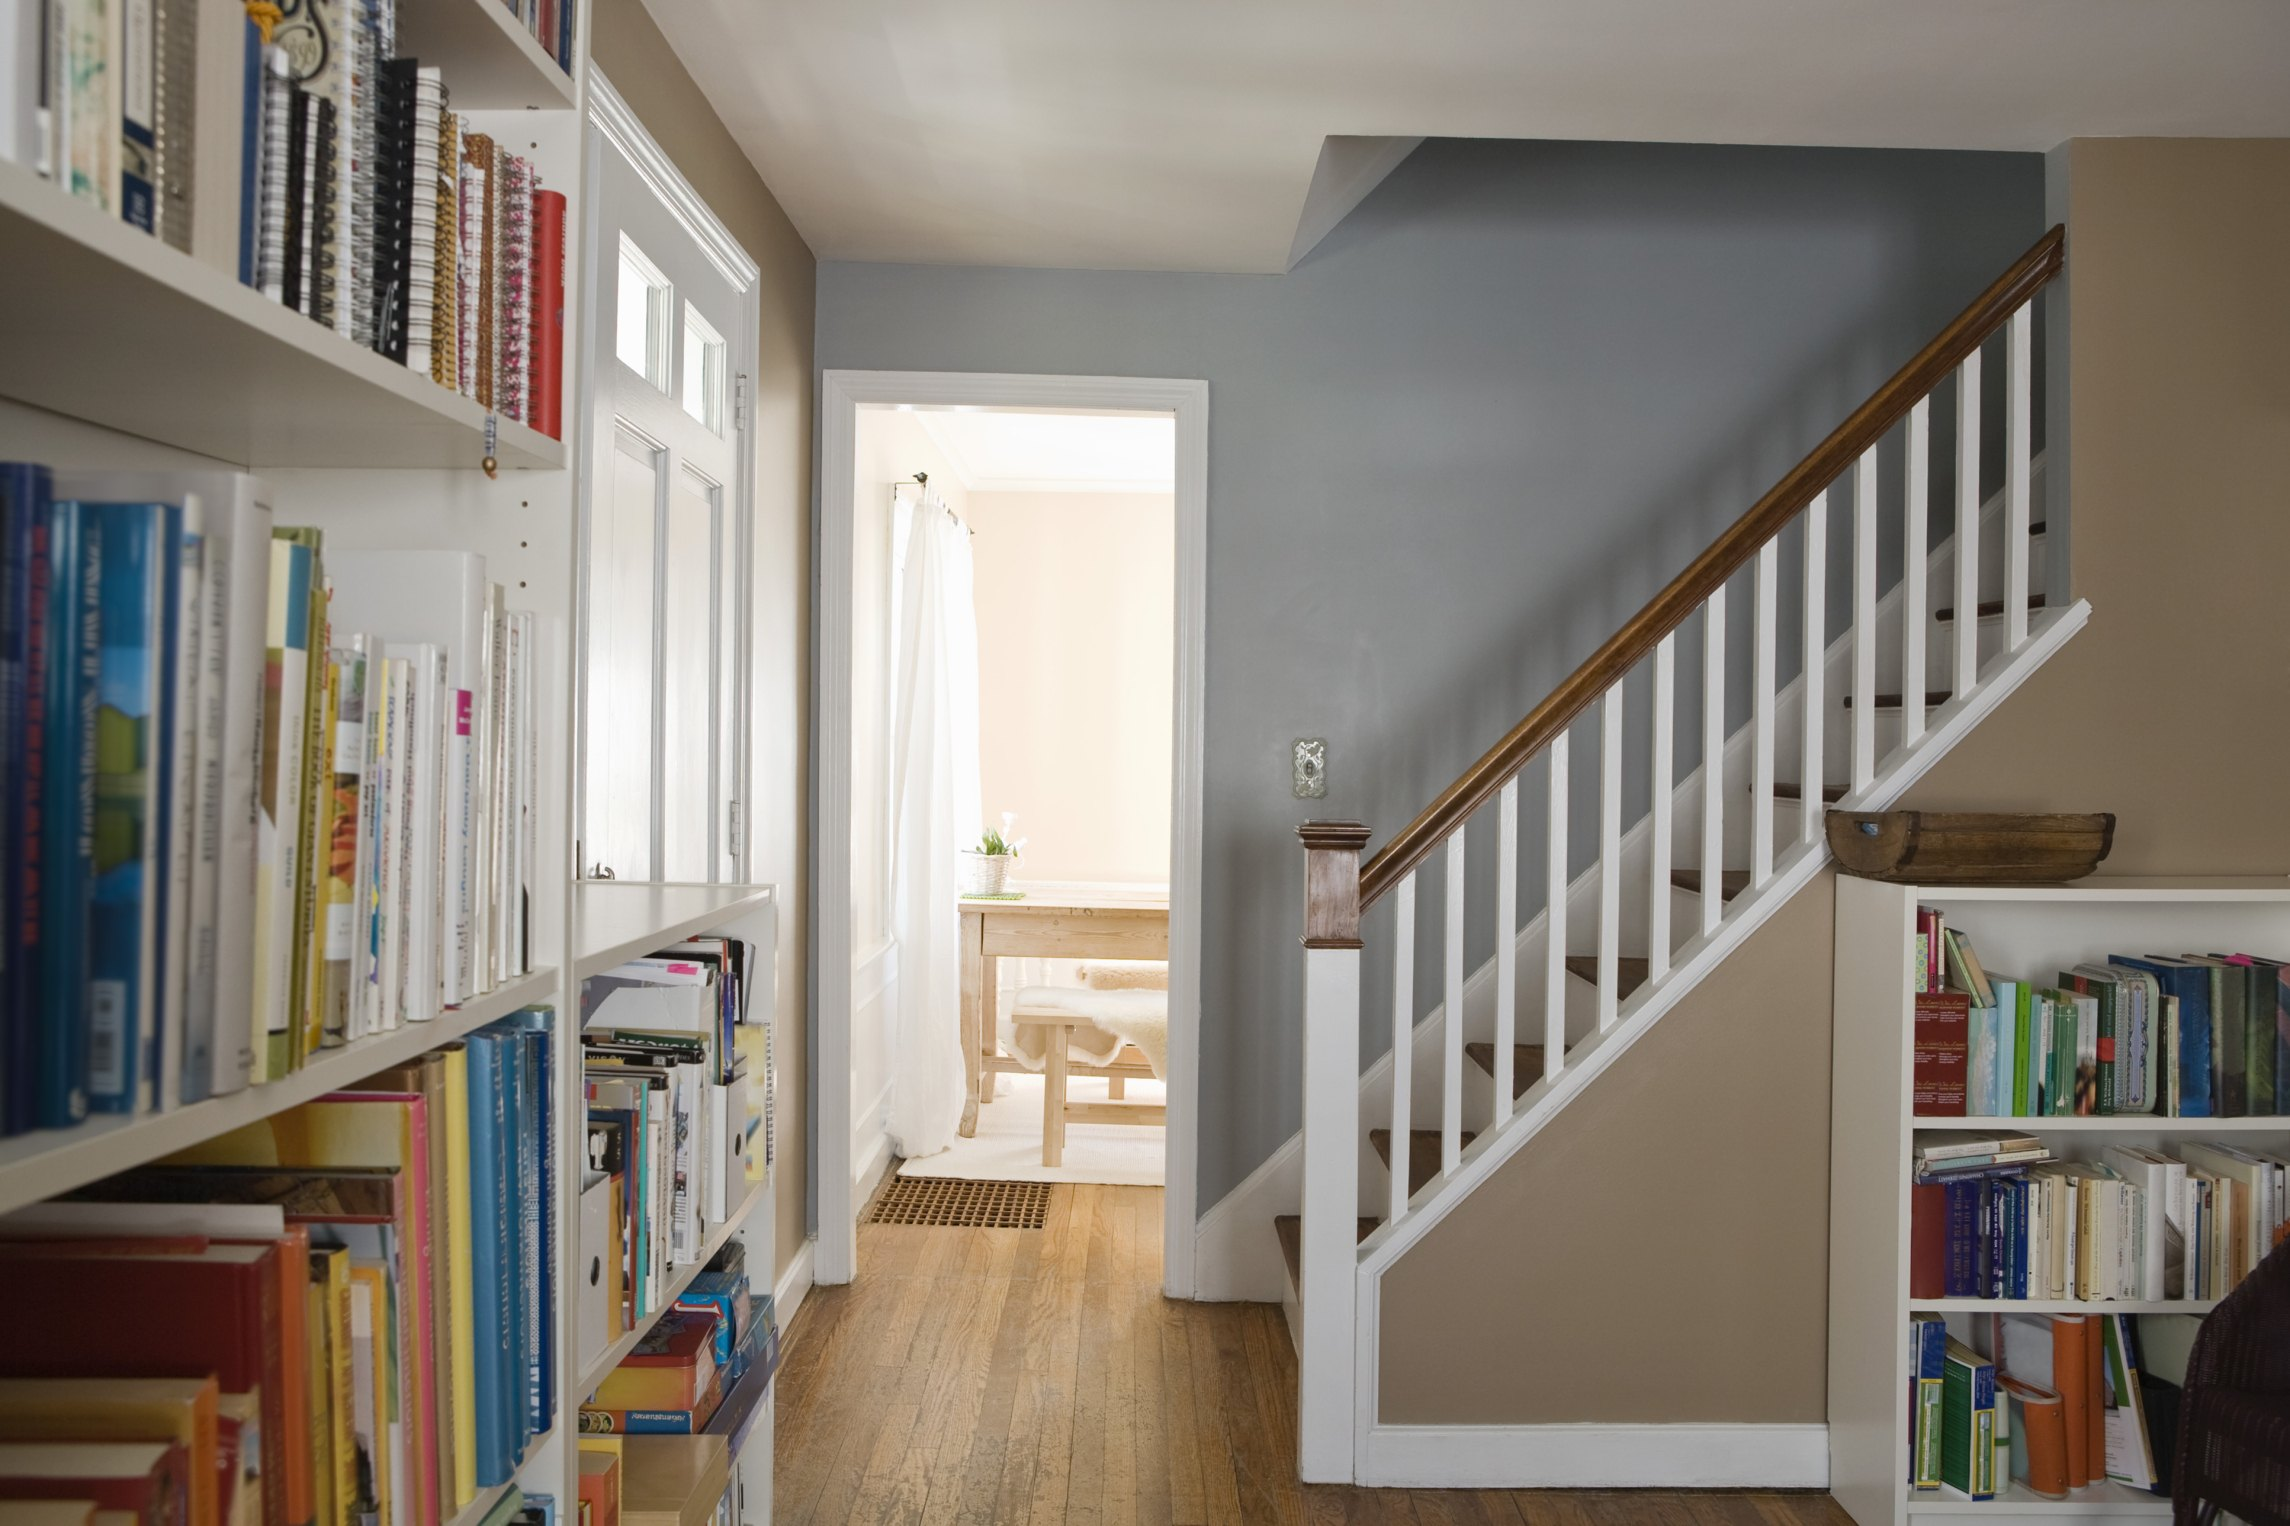 Bücherregal Schlafzimmer Feng Shui French Tuck Method For Stair Runners Ehow